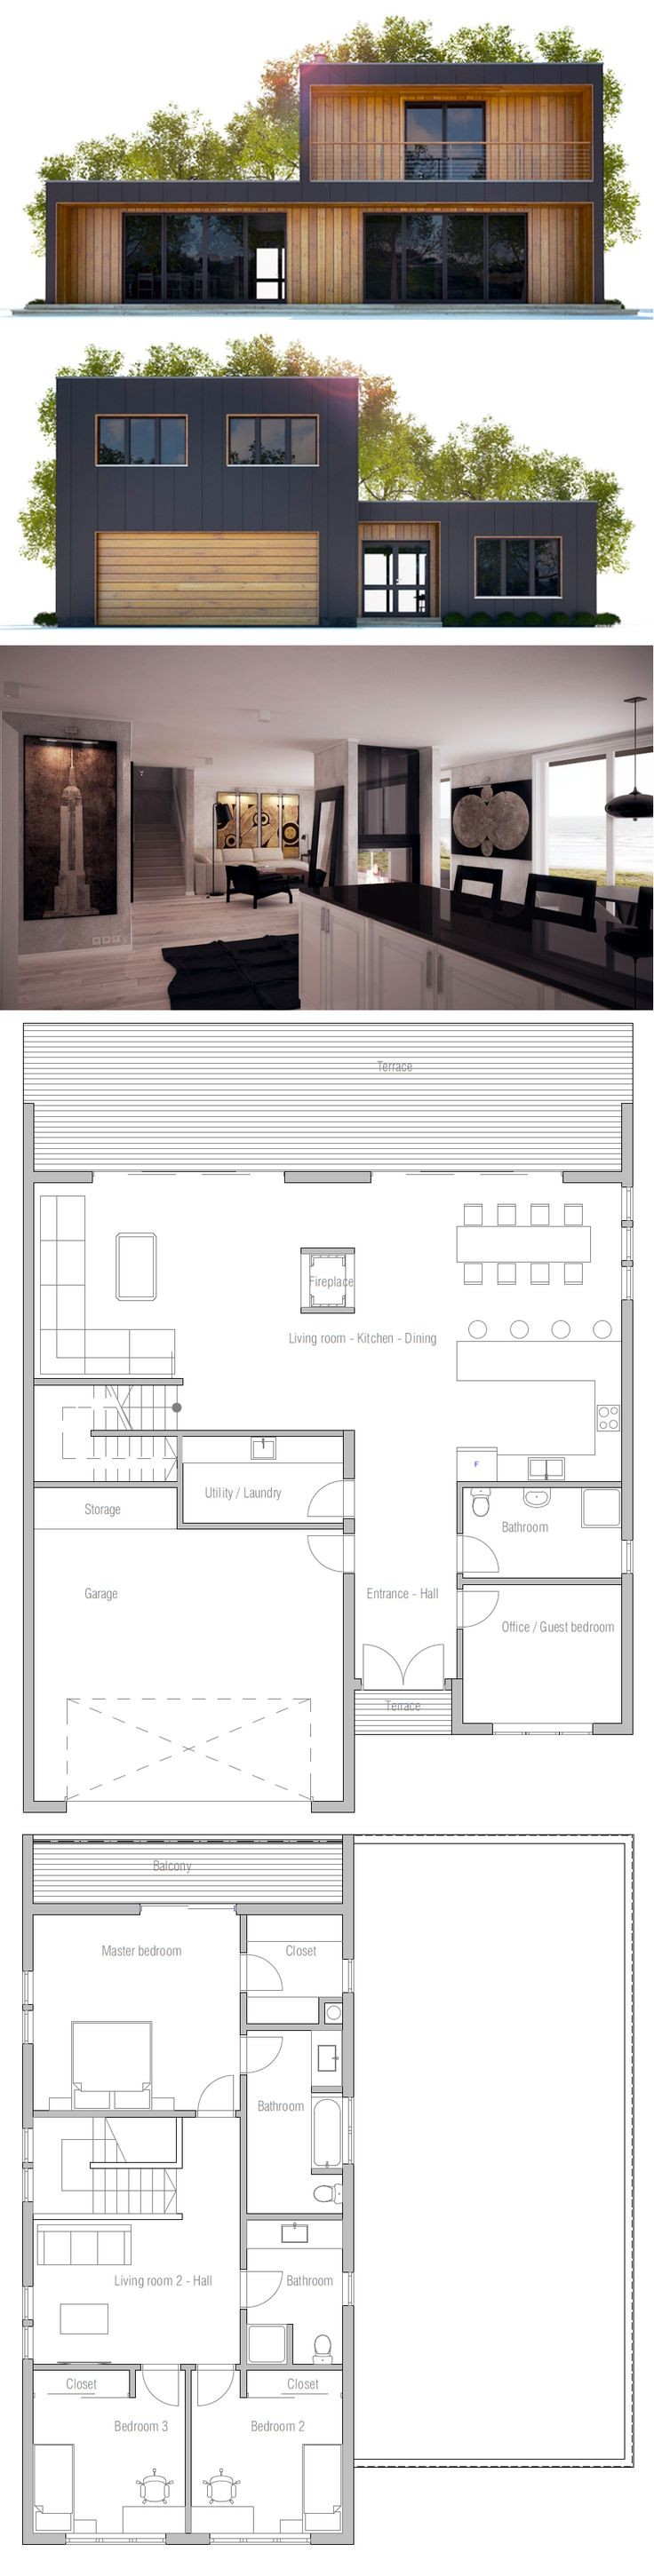 container house house plan distribucin who else wants simple step by step plans to design and build a container home from scratch